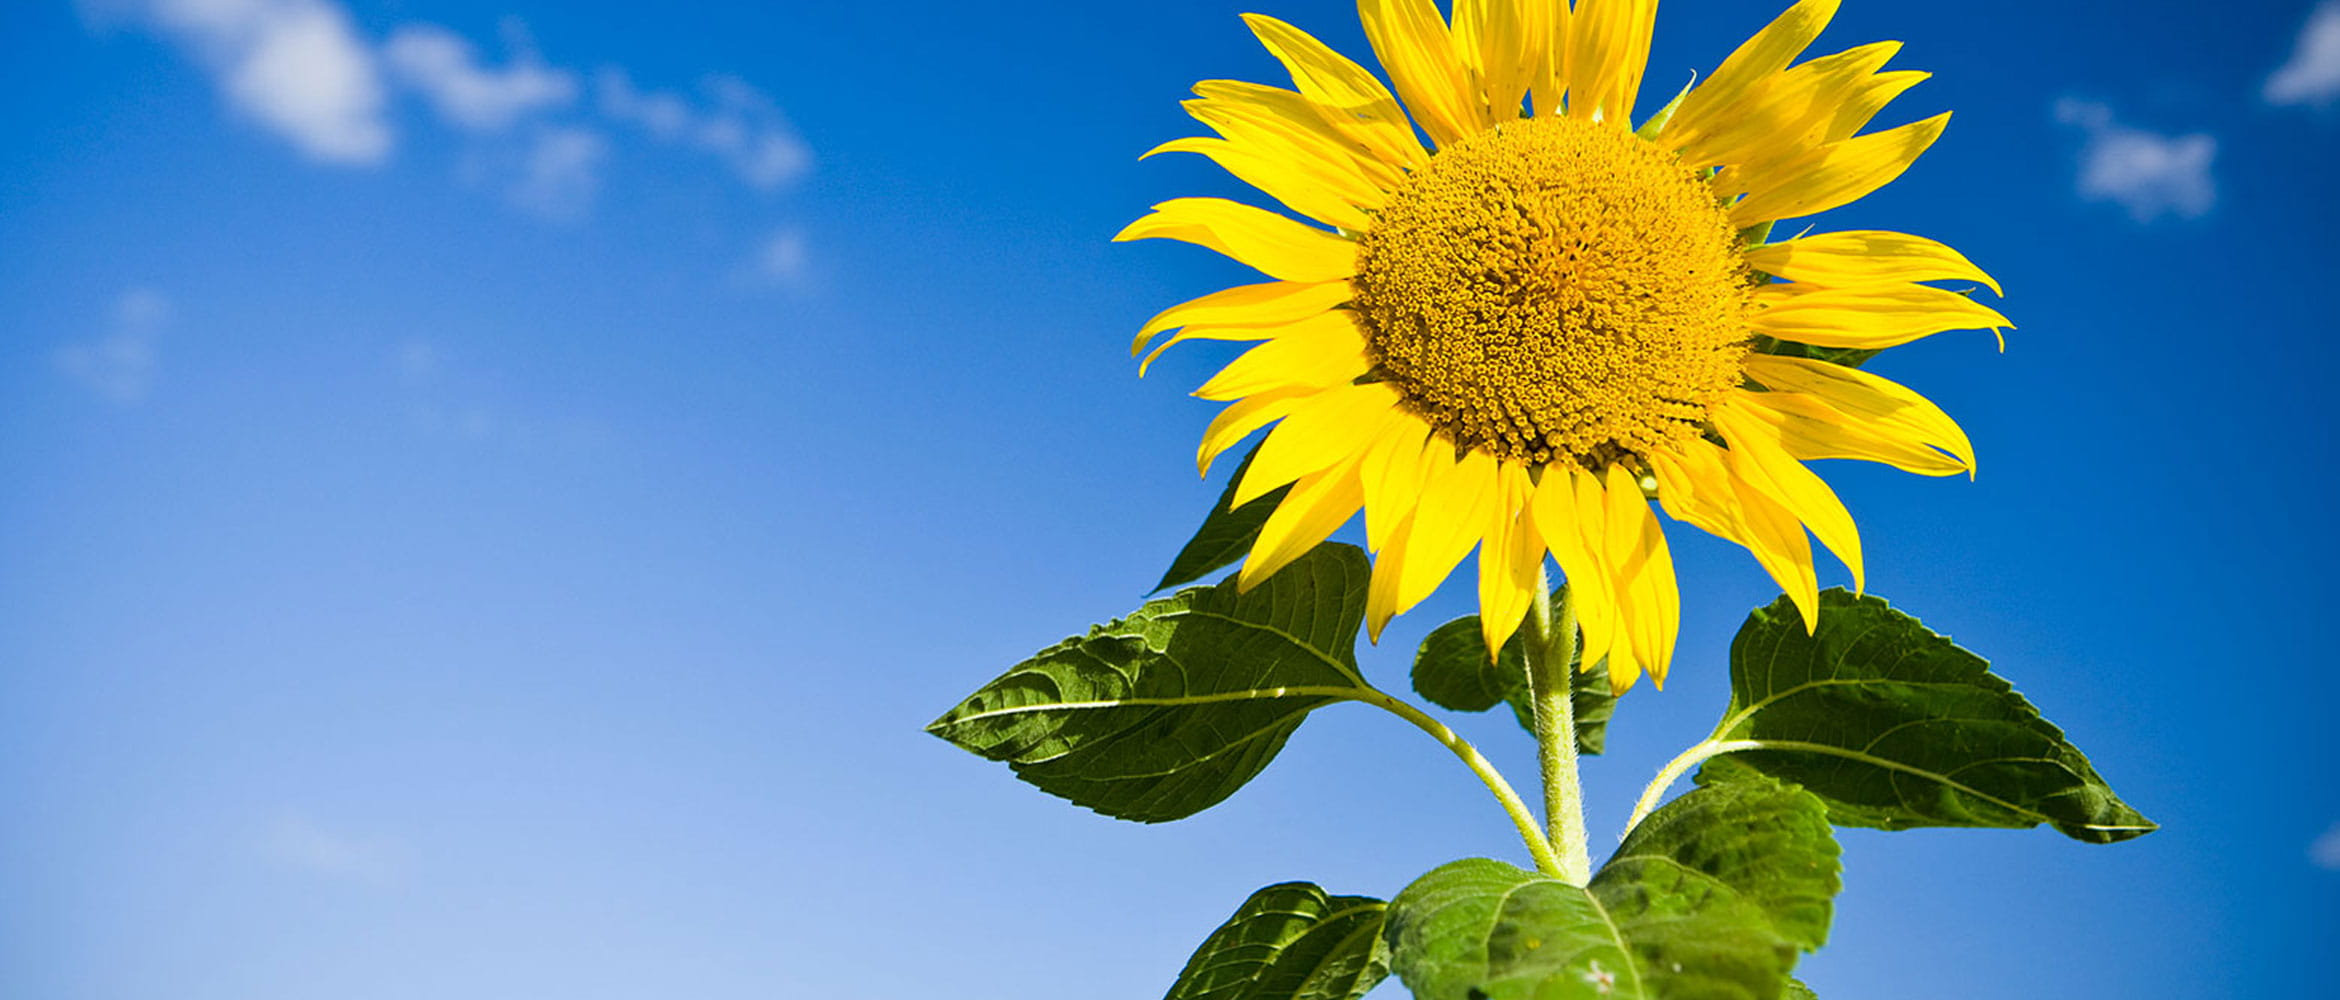 Sunflower picture